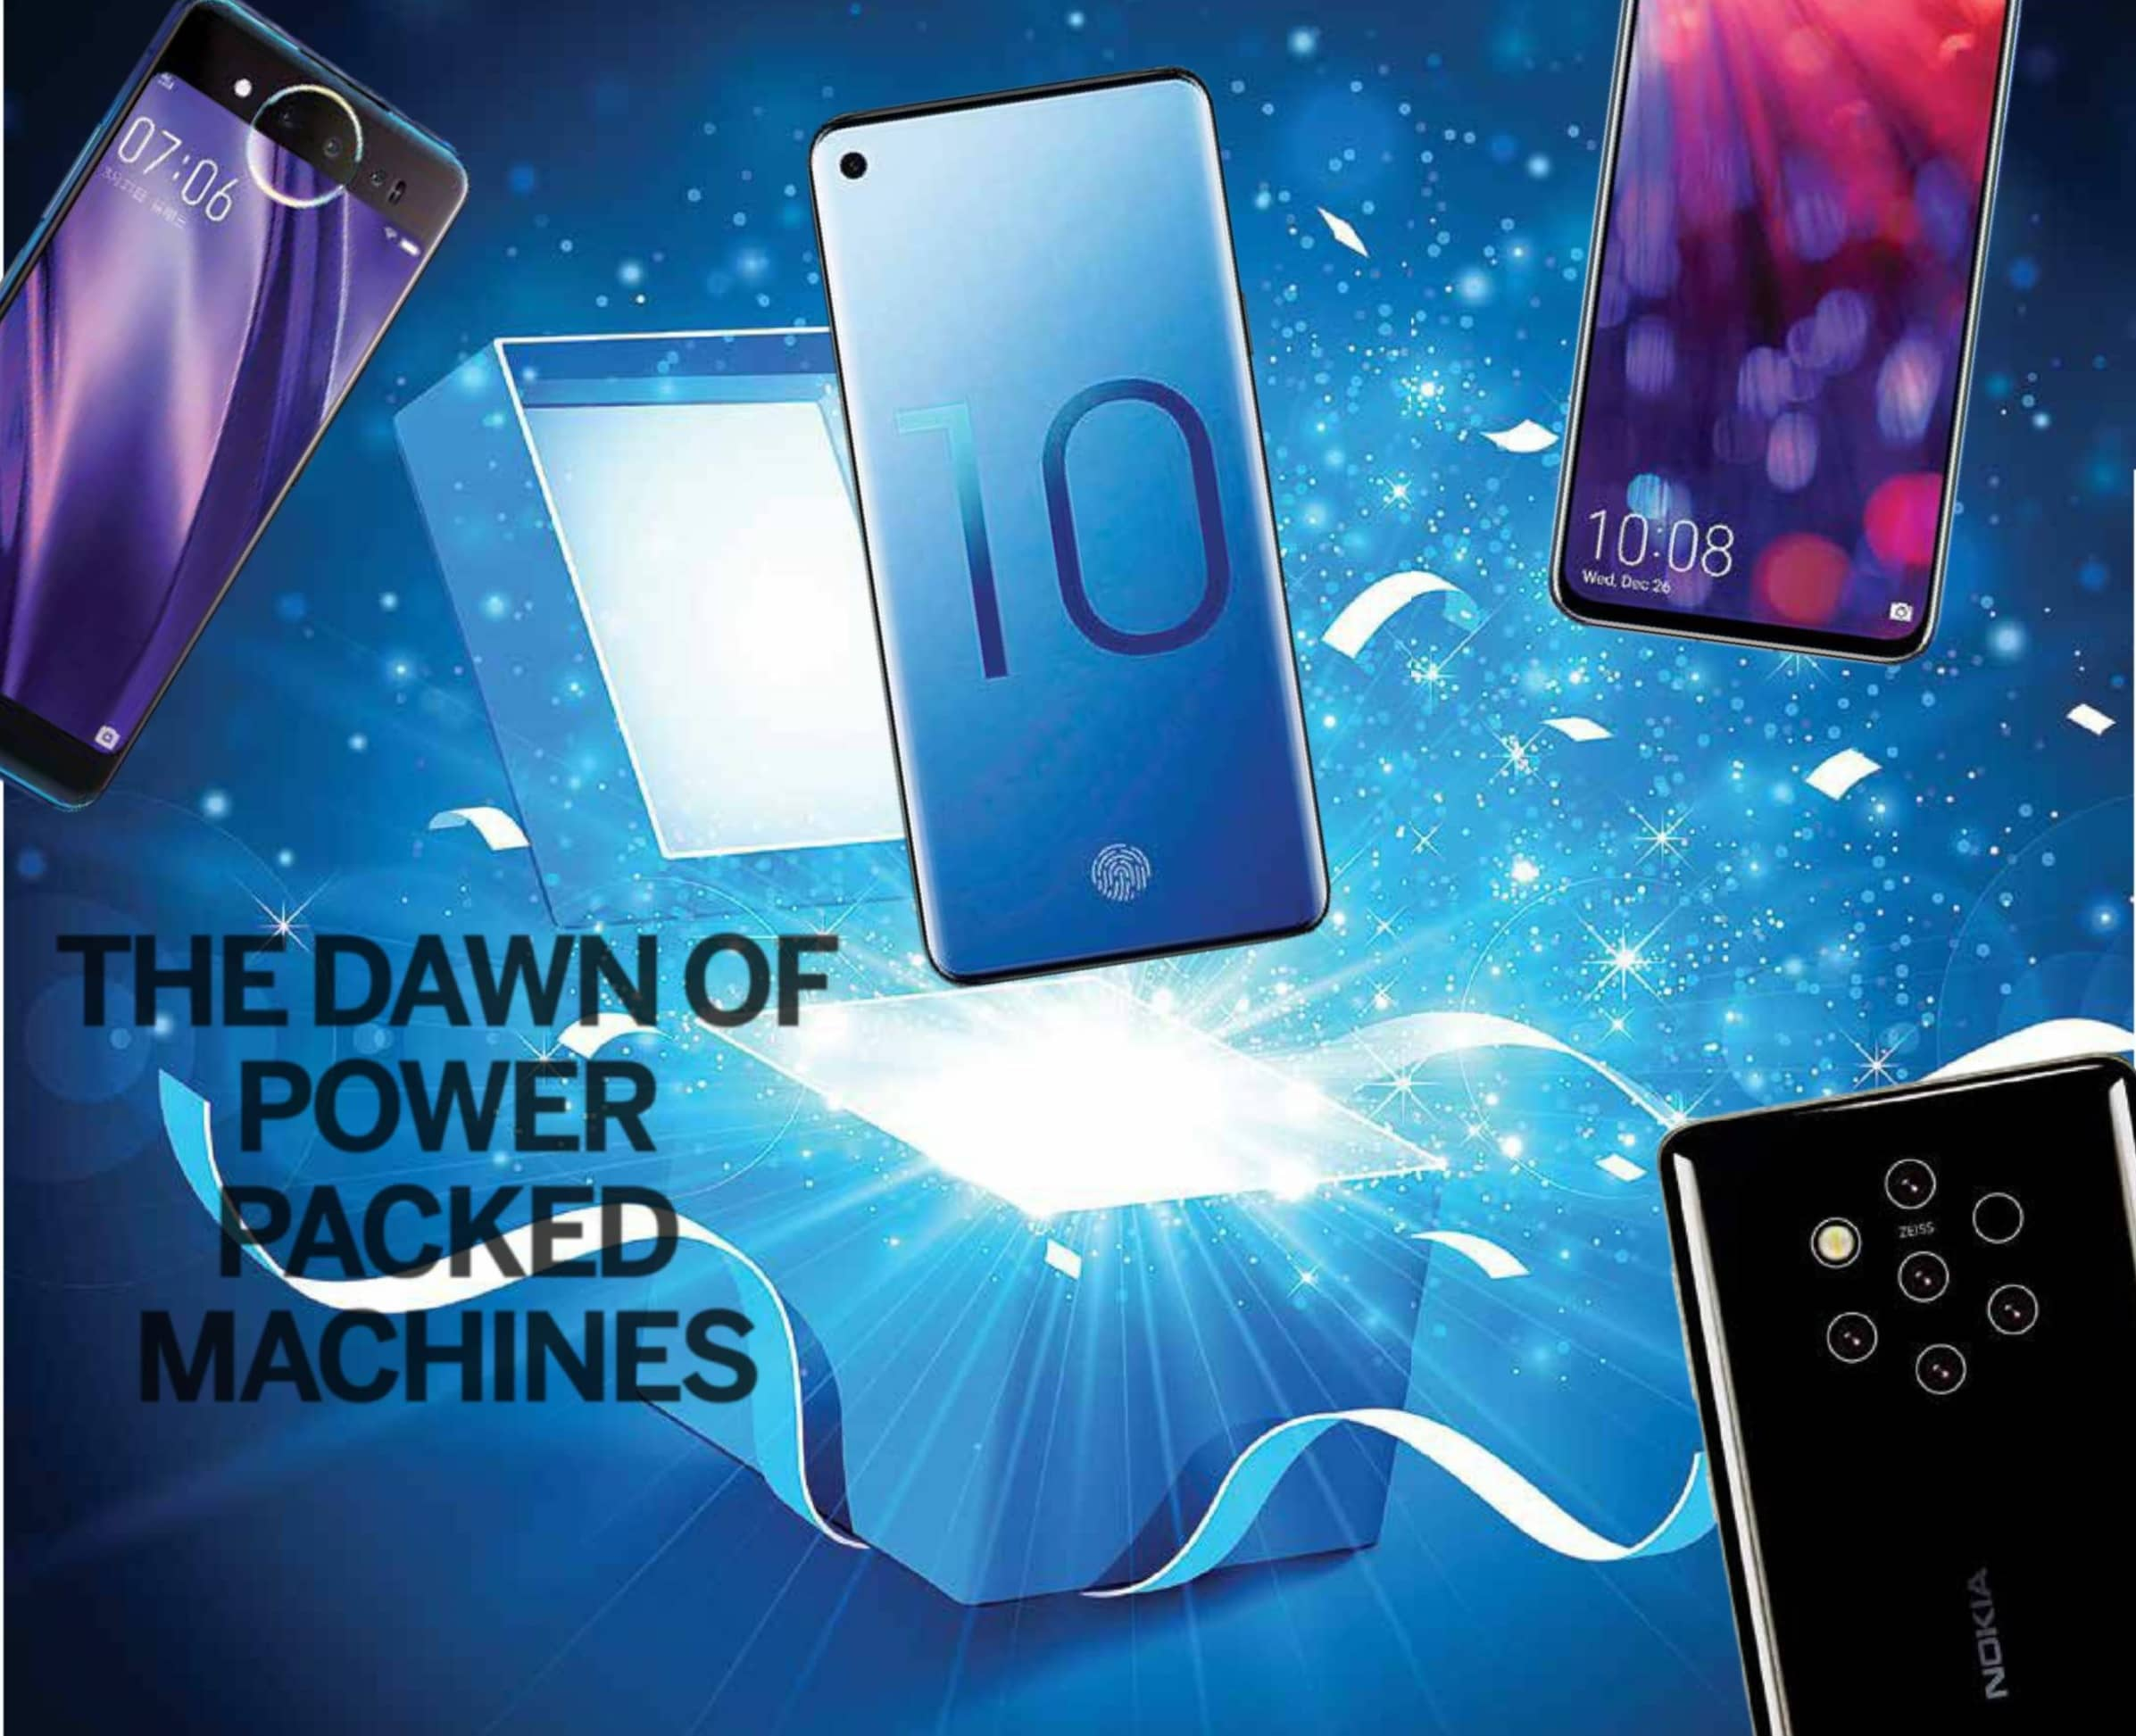 The Dawn Of Power Packed Machines